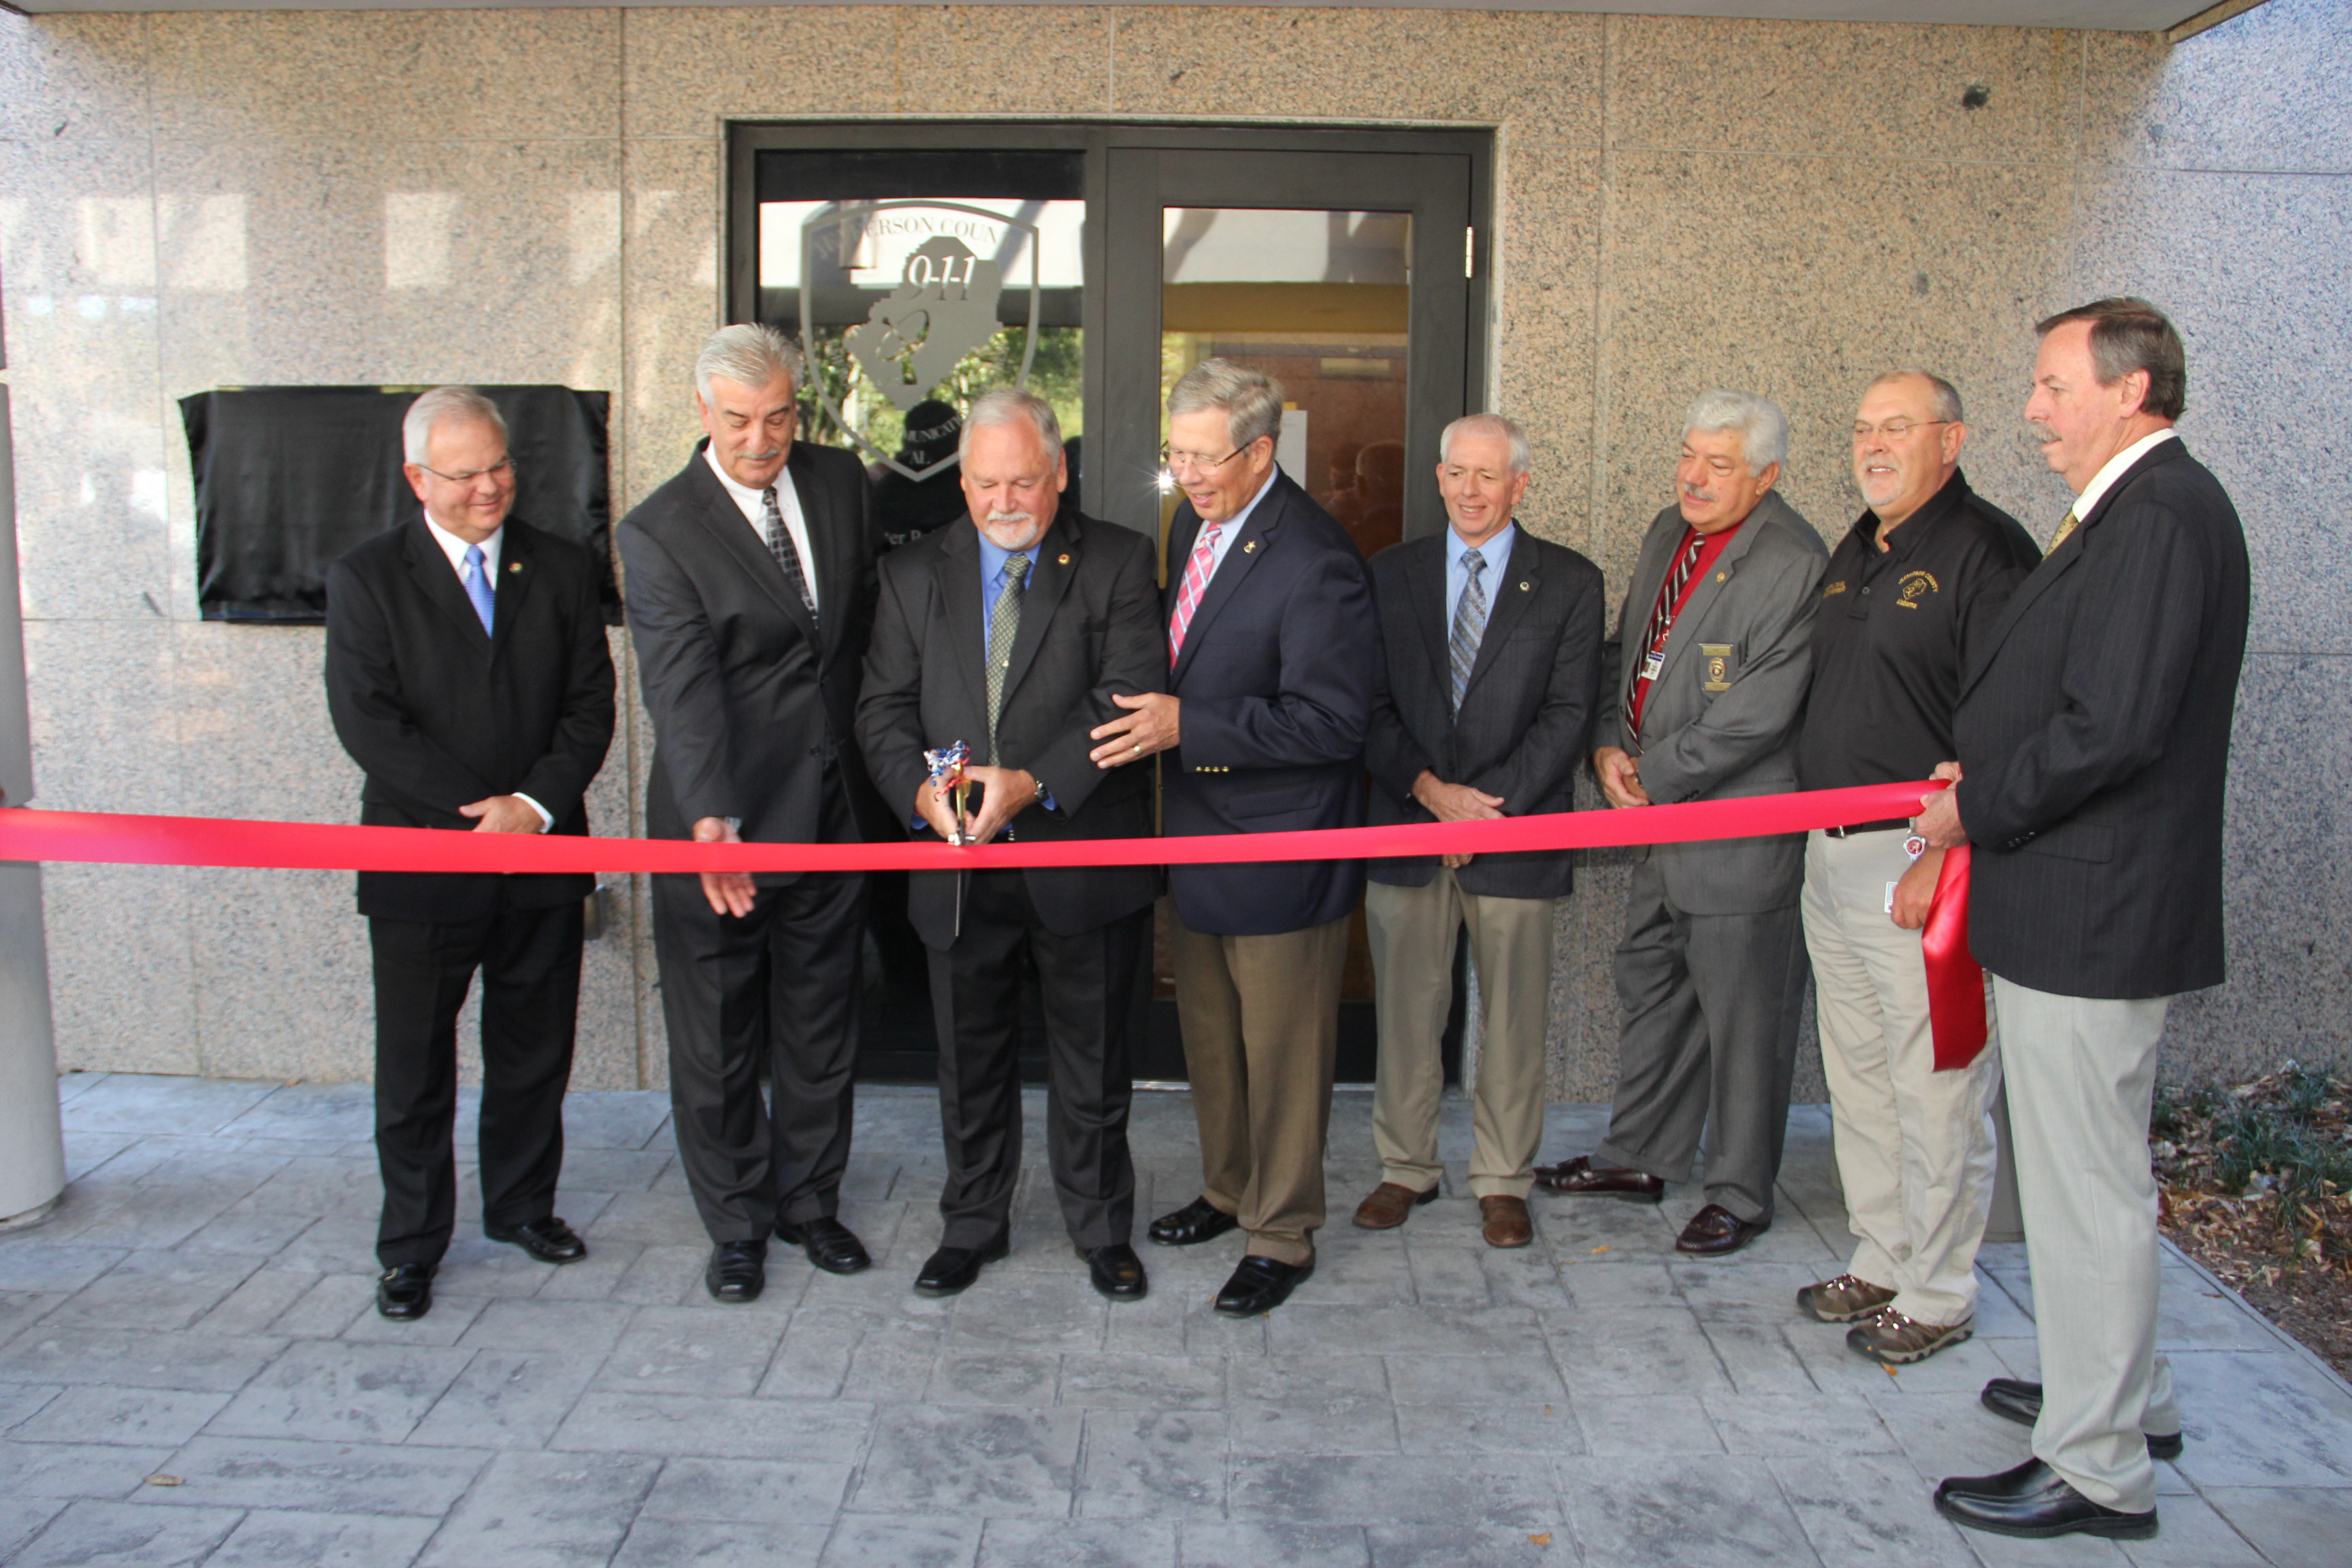 Jefferson County dedicates new E-911 center